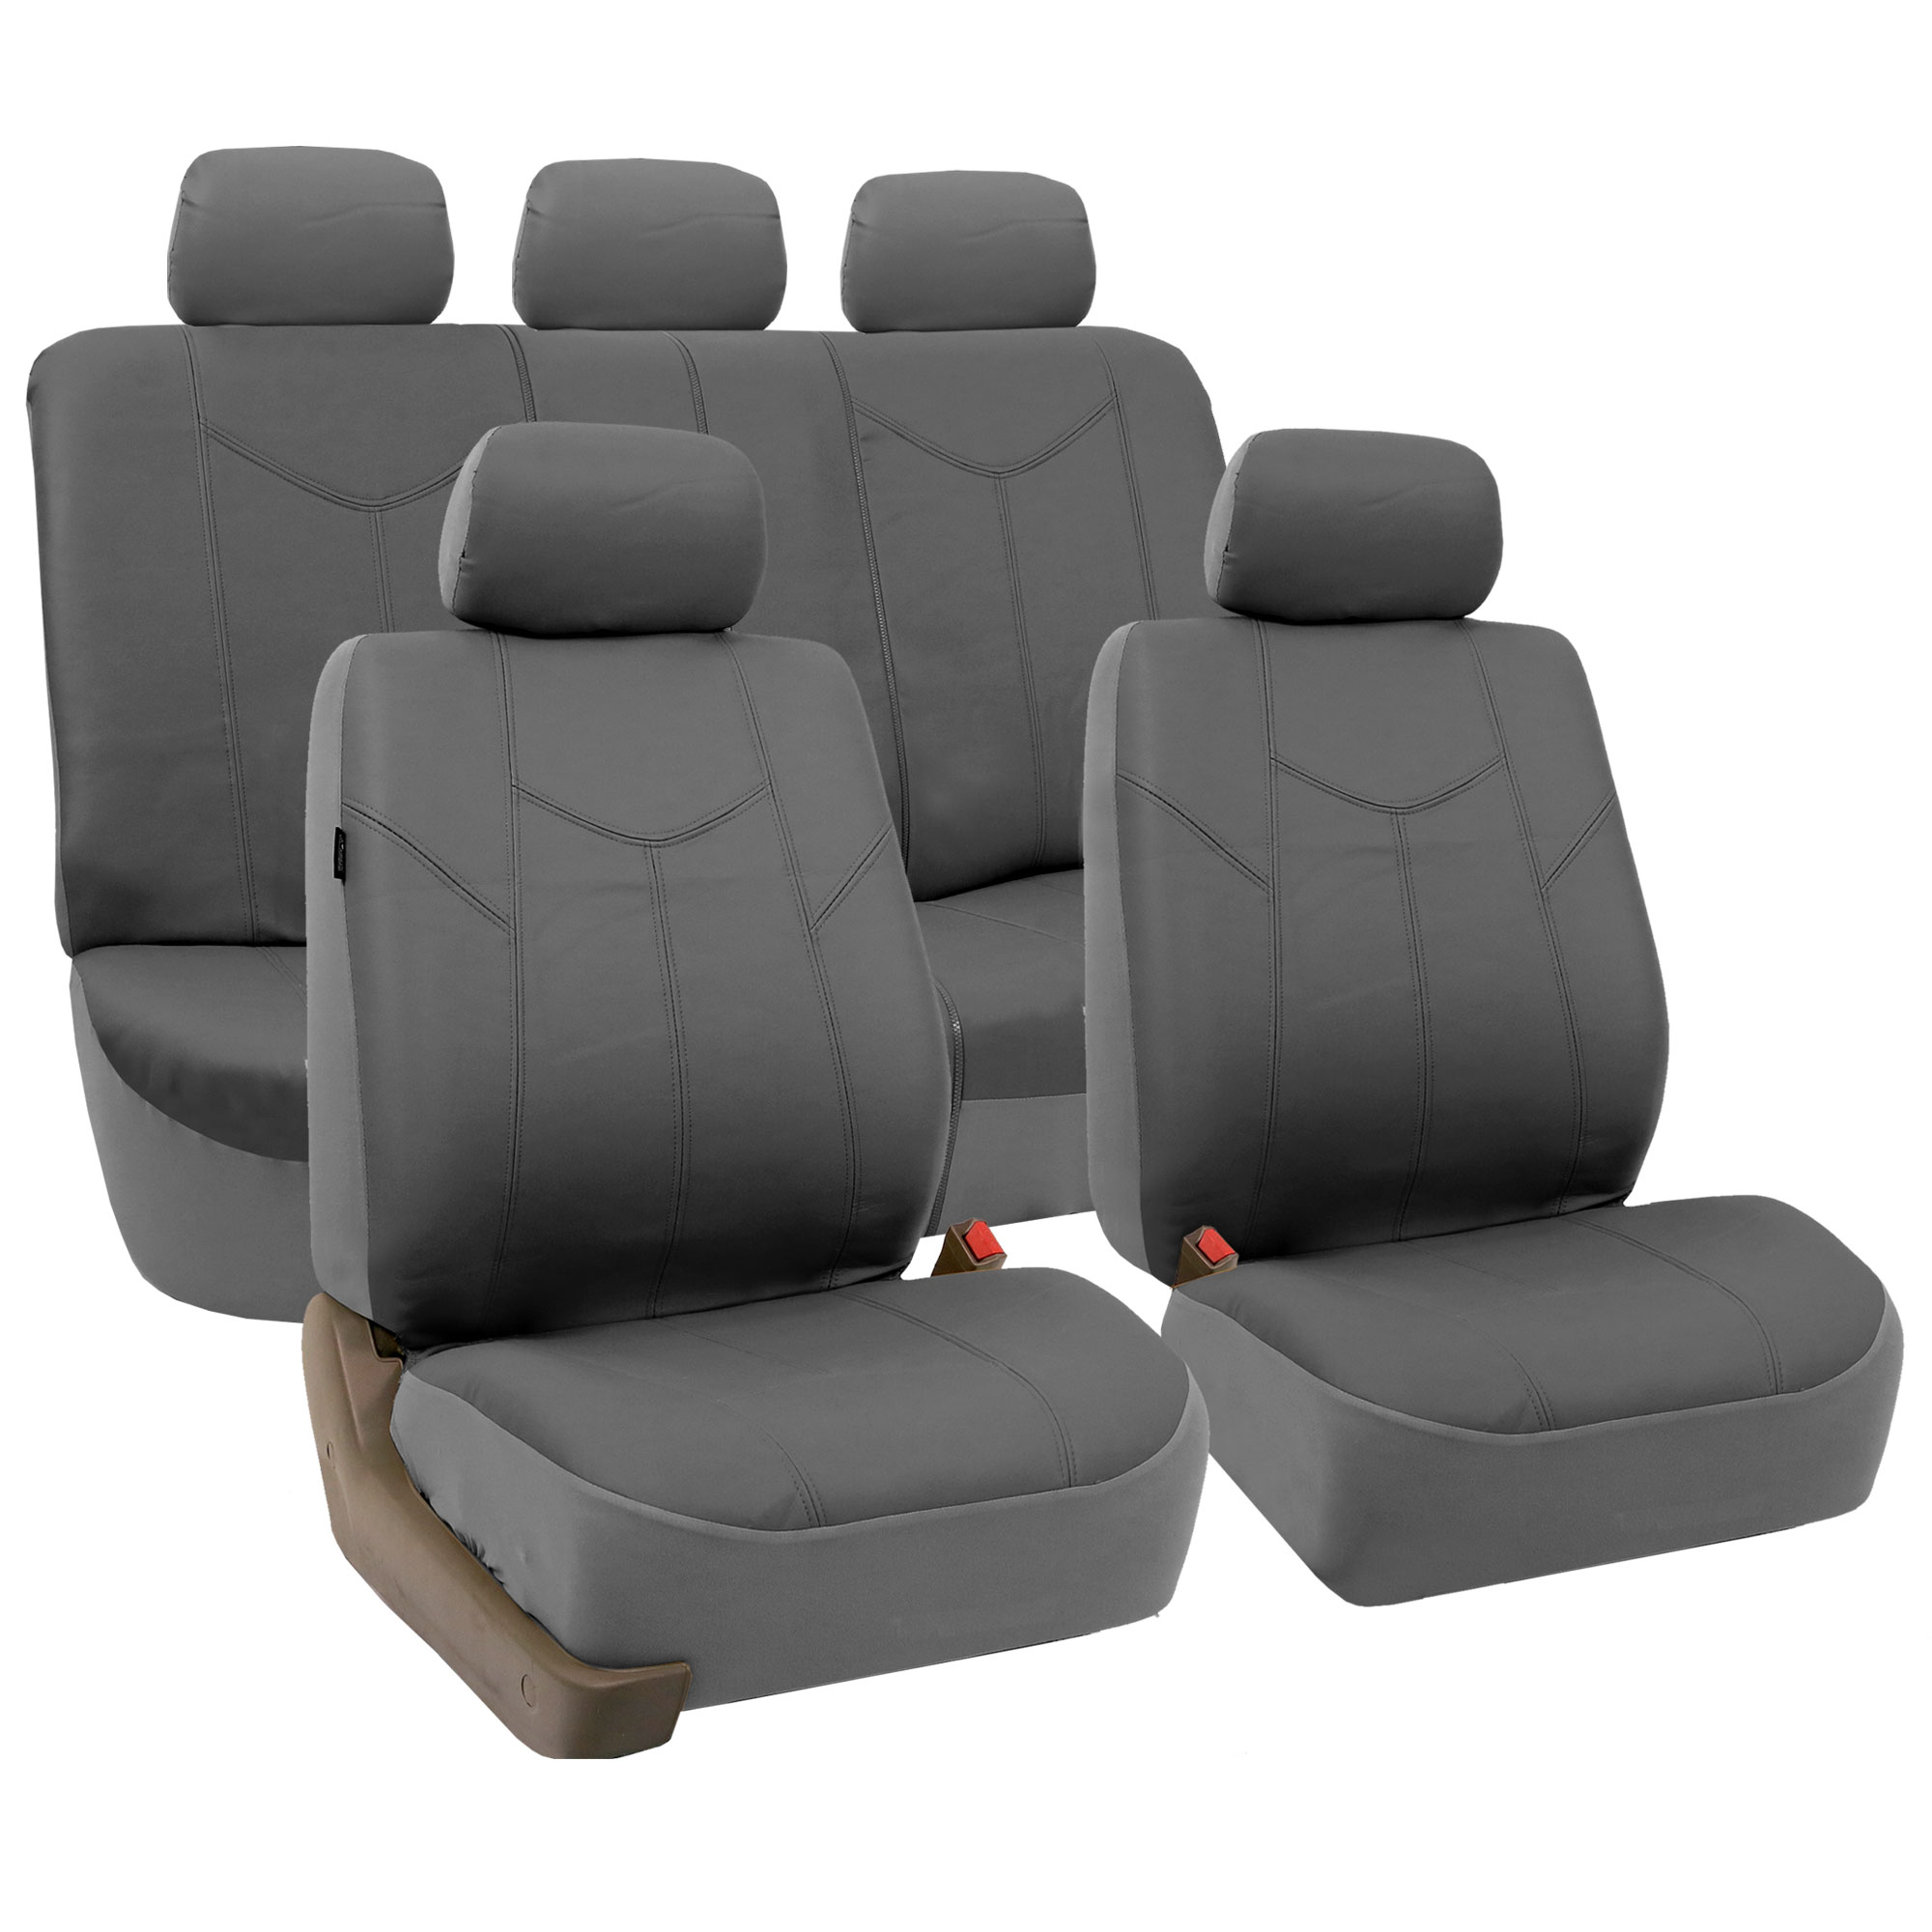 Very Impressive portraiture of   Leather 3 Row Seat Covers For VAN Air Bag Safe amp Split Bench Ready with #AD291E color and 2000x2000 pixels